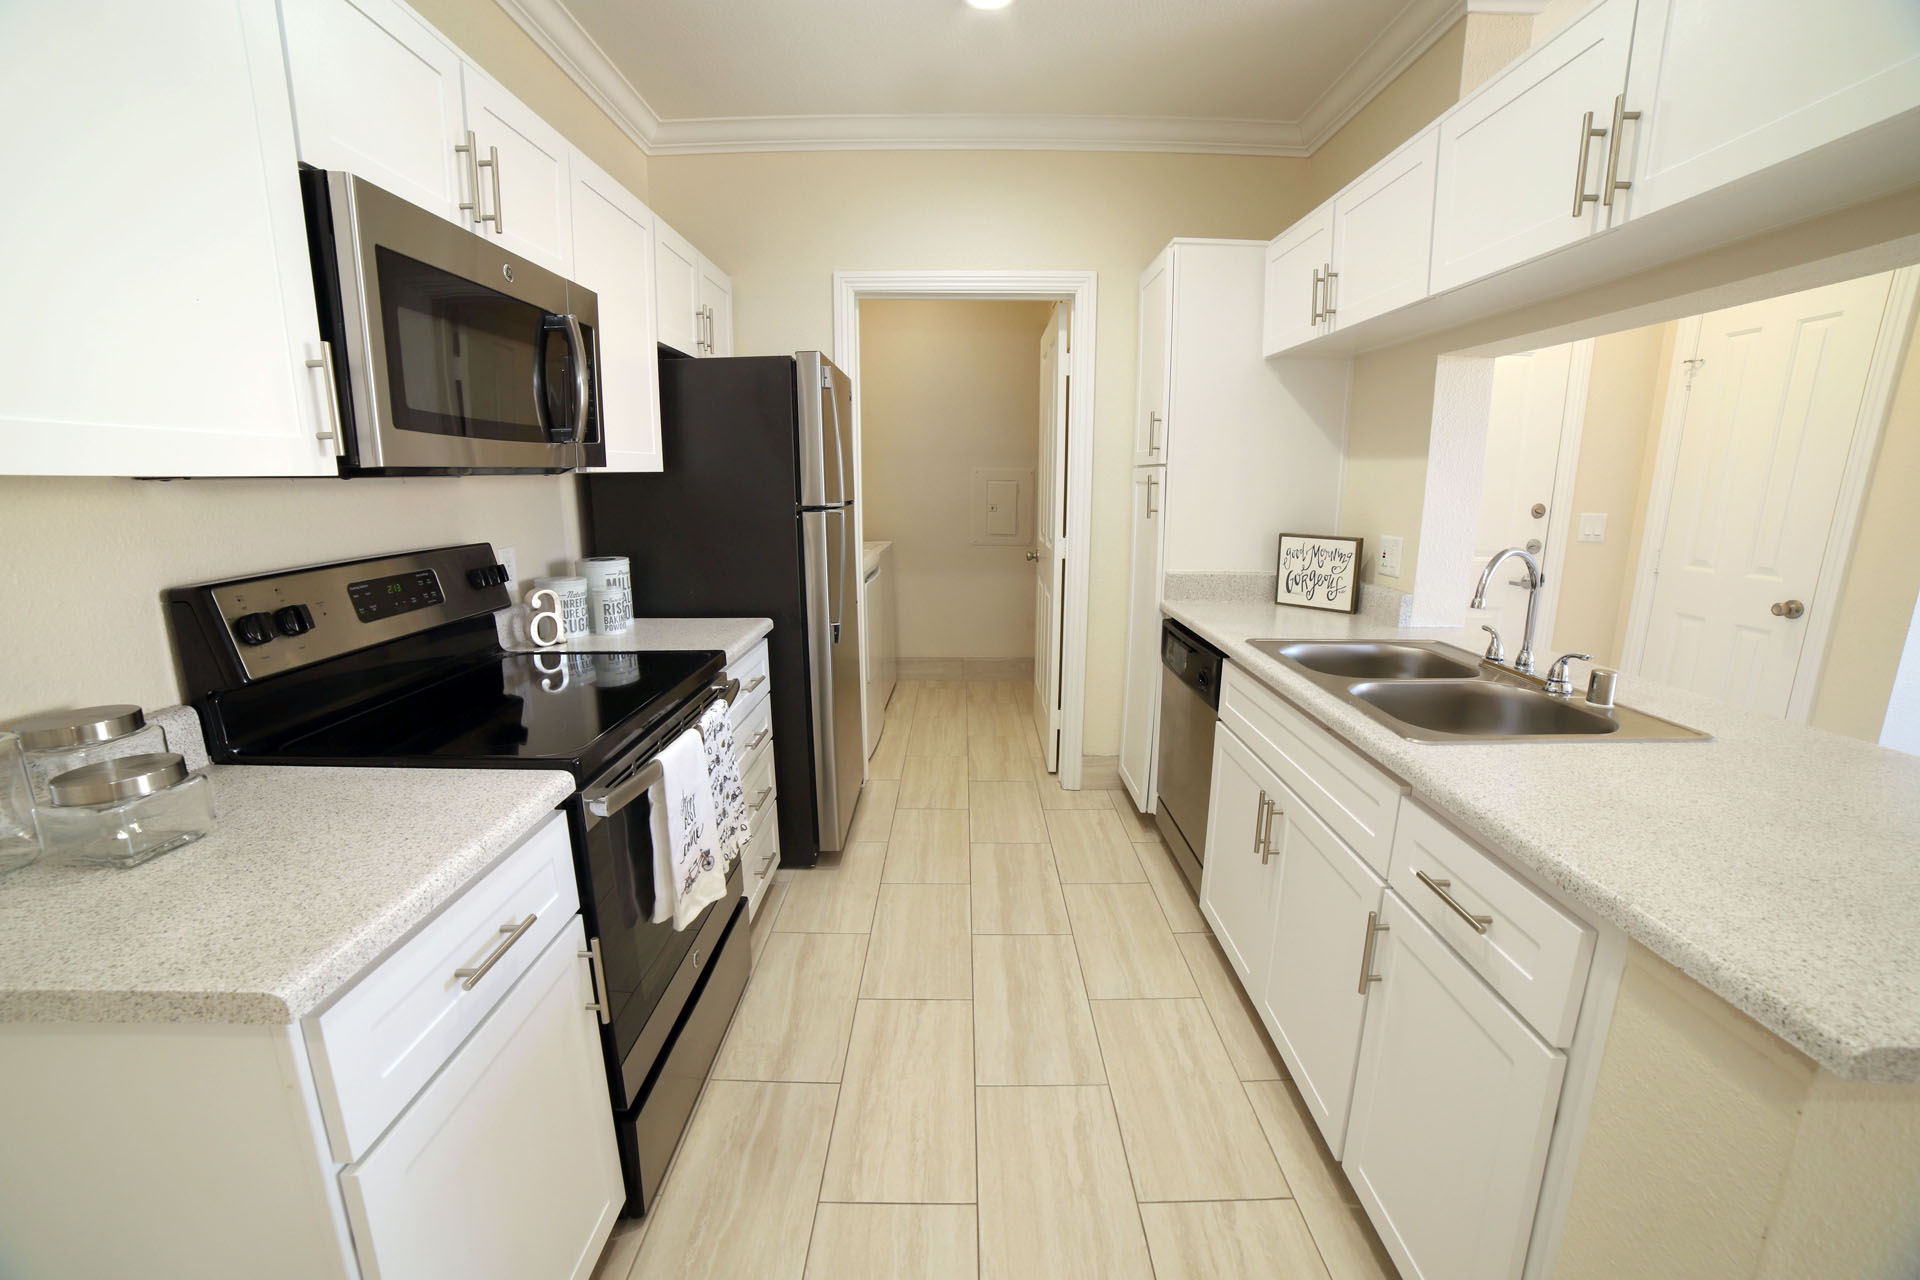 Aliso Viejo Apartments for Rent-Aventine Apartments Kitchen with Matching Appliances, White Cabinets, and Tons of Counter Top Space